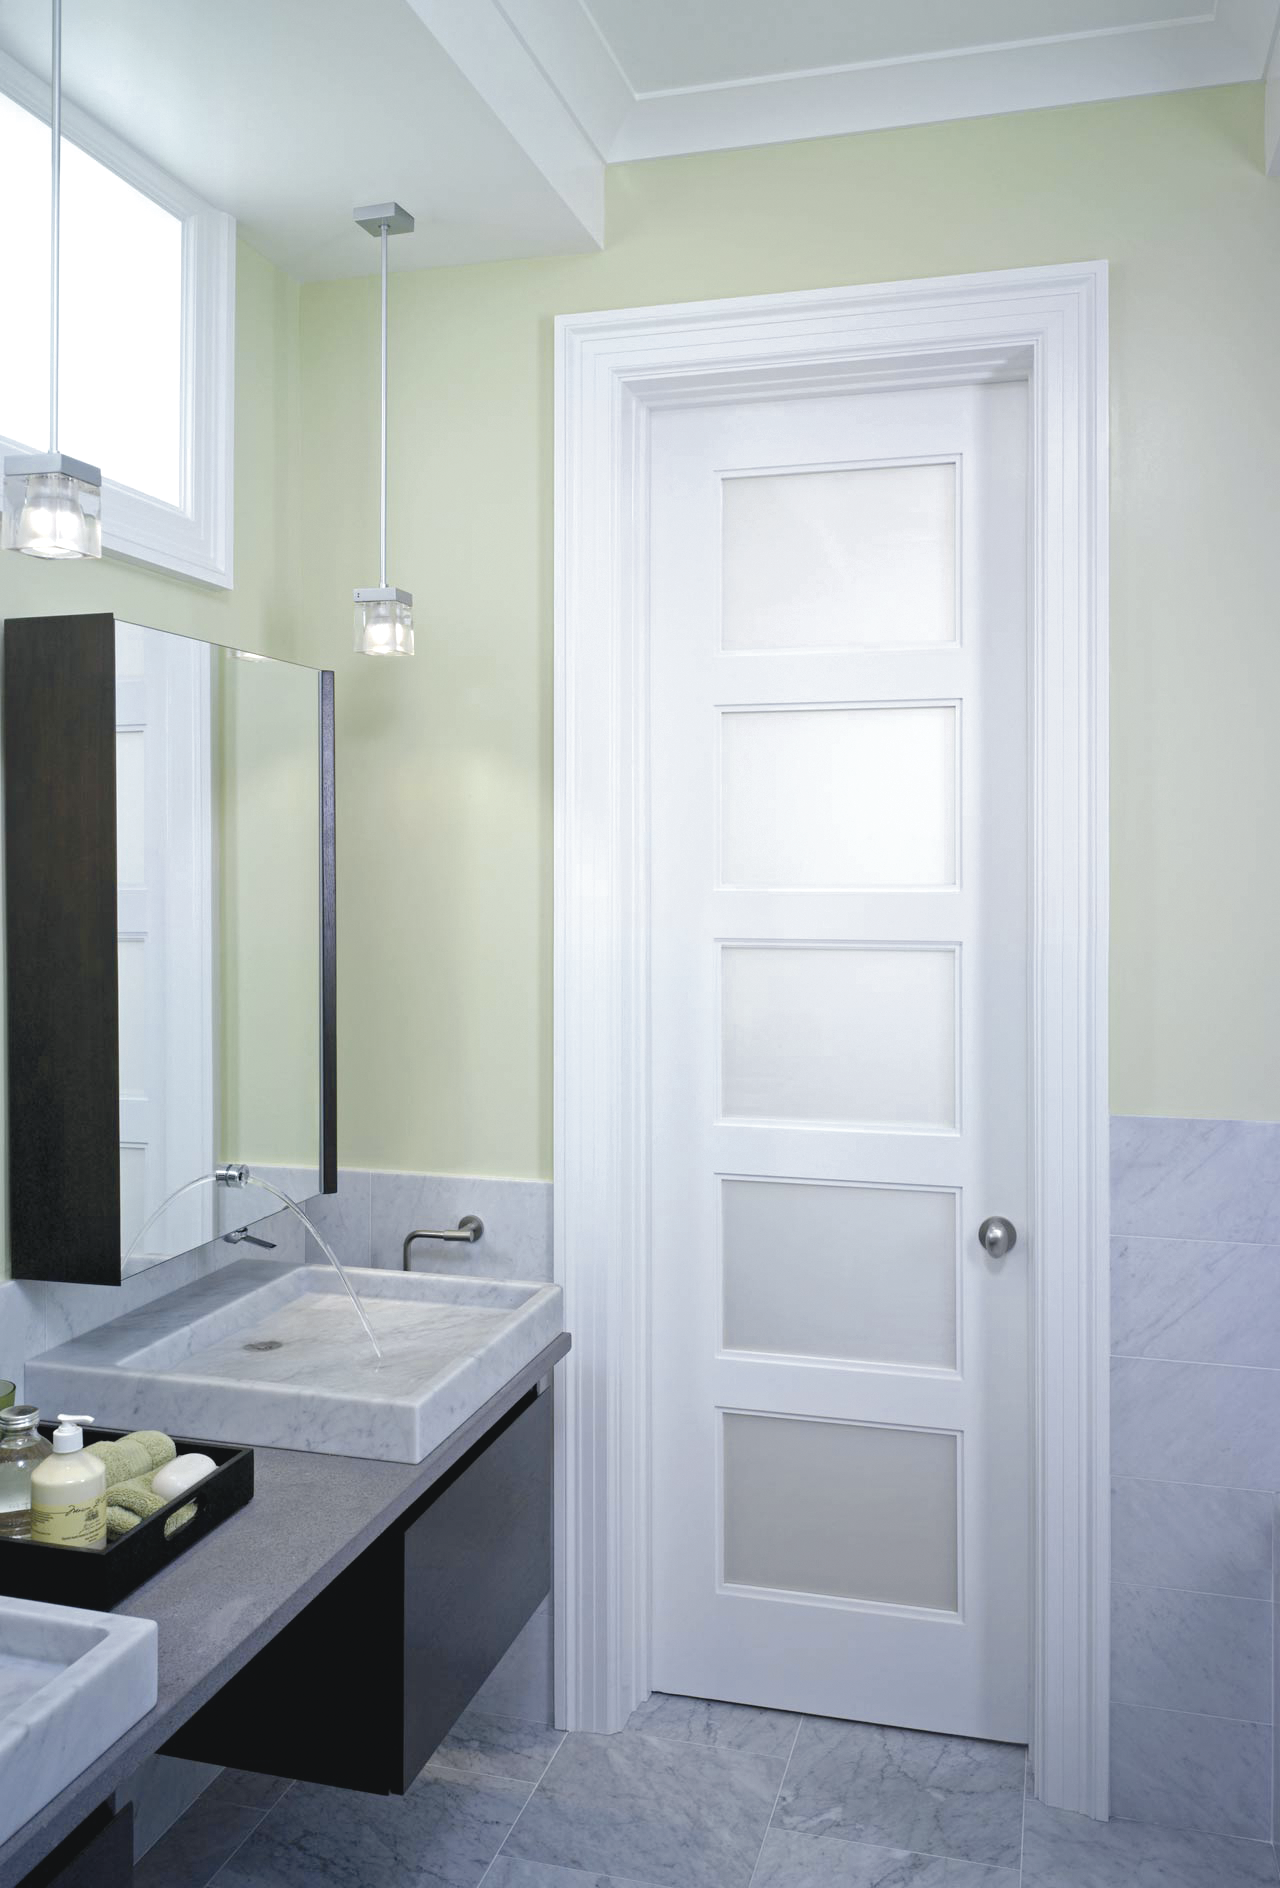 5 Panel Privacy Glass Door Update Your Bathroom In Just